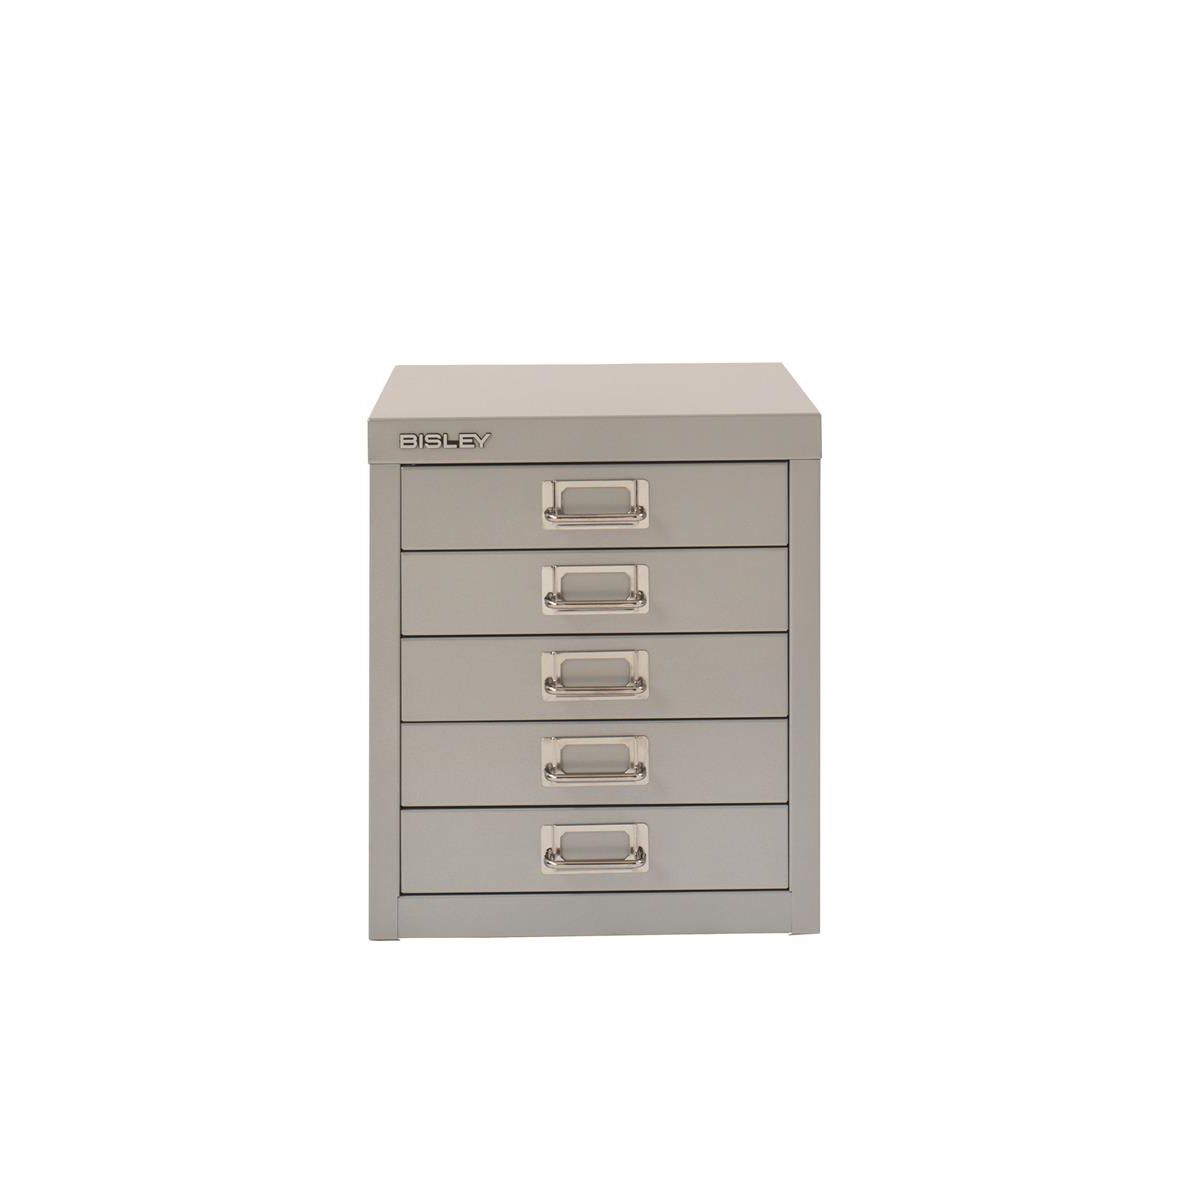 Image for Bisley SoHo 5 Draw Multidrawer 279x380x325mm Grey Ref H125NL-av4